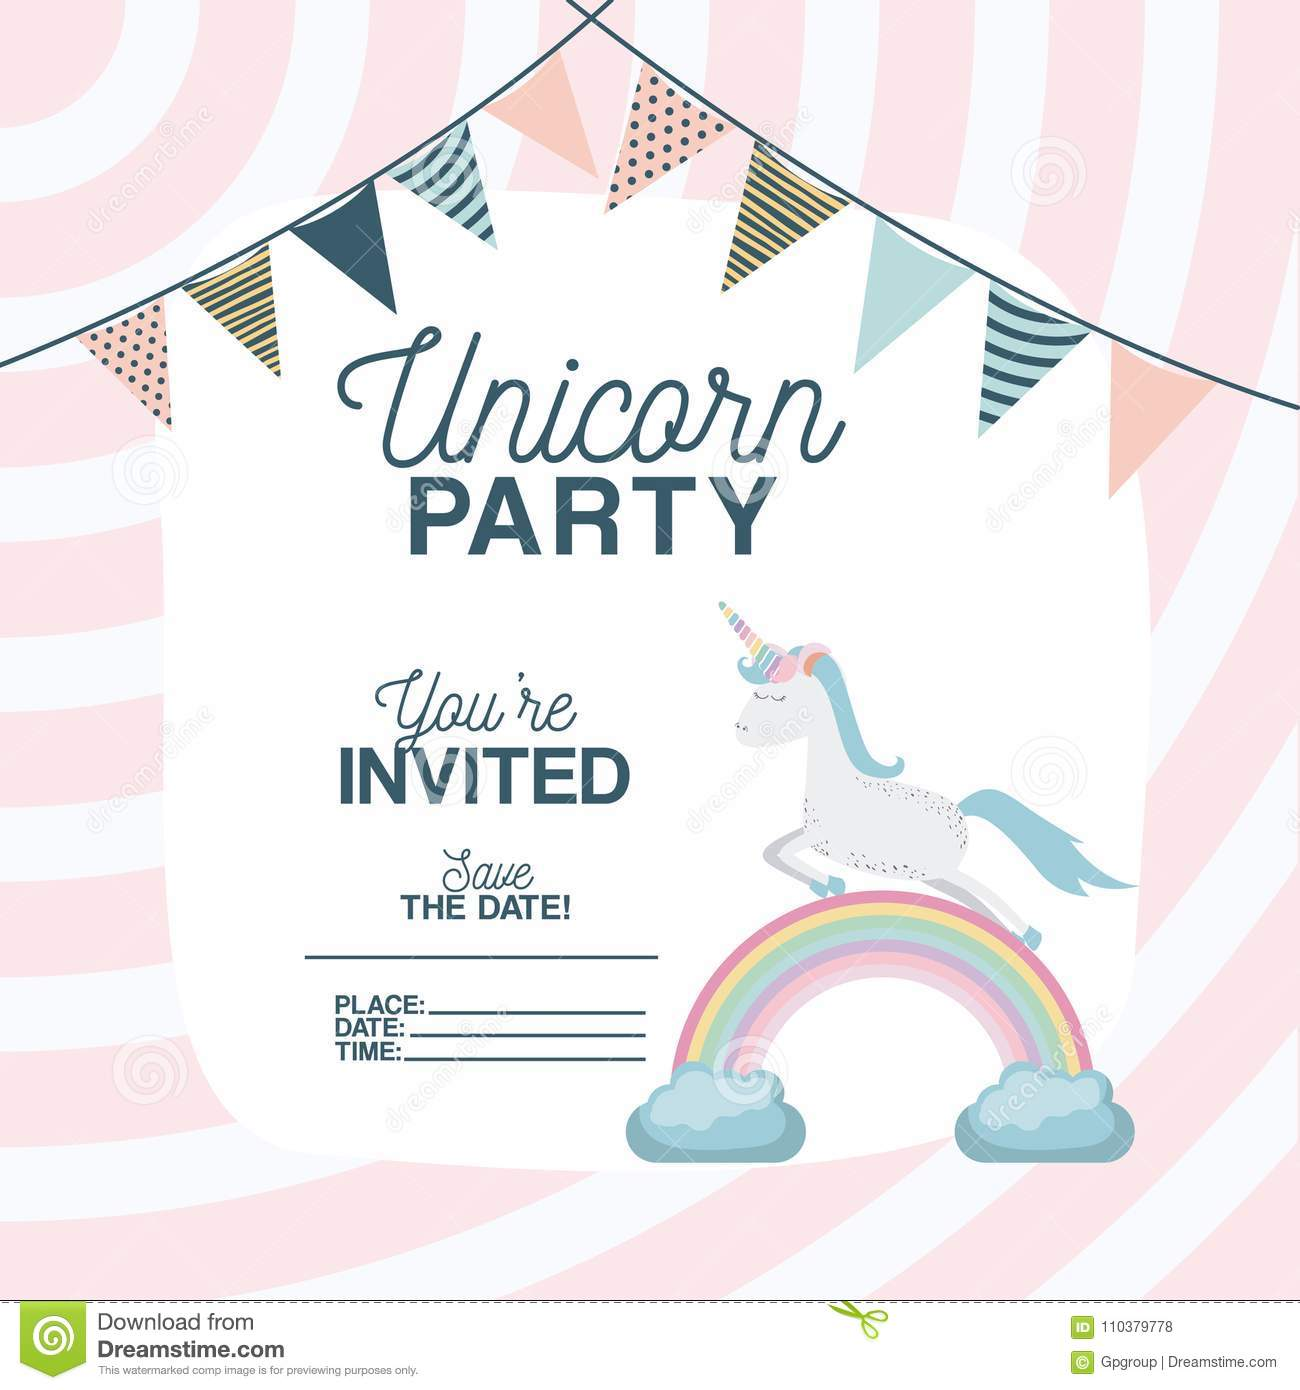 Unicorn Party Invitation Card With Floral Decoration And Garlands ...